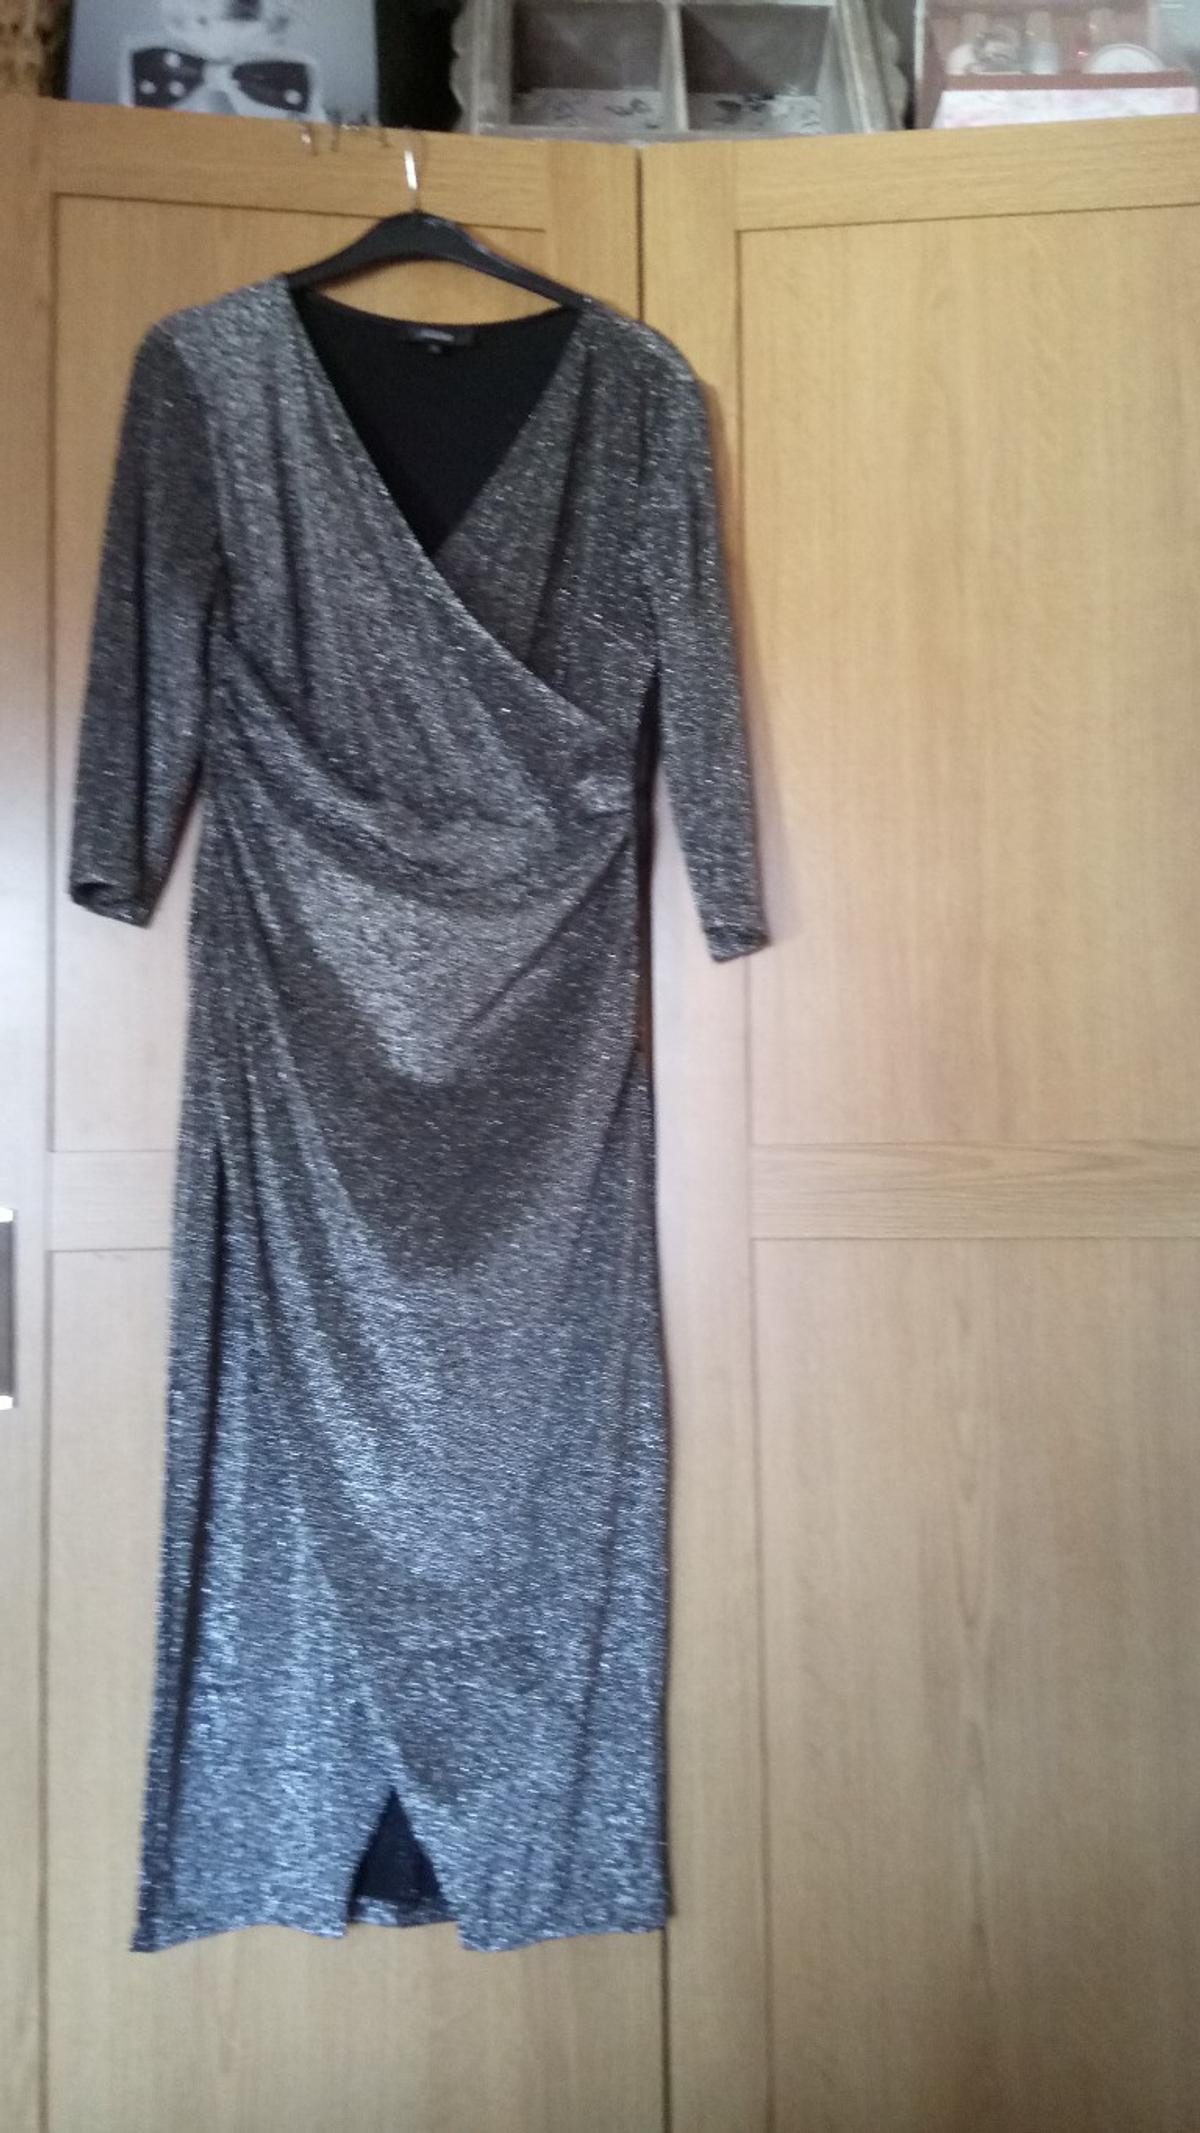 Size m very flattering on the tummy area